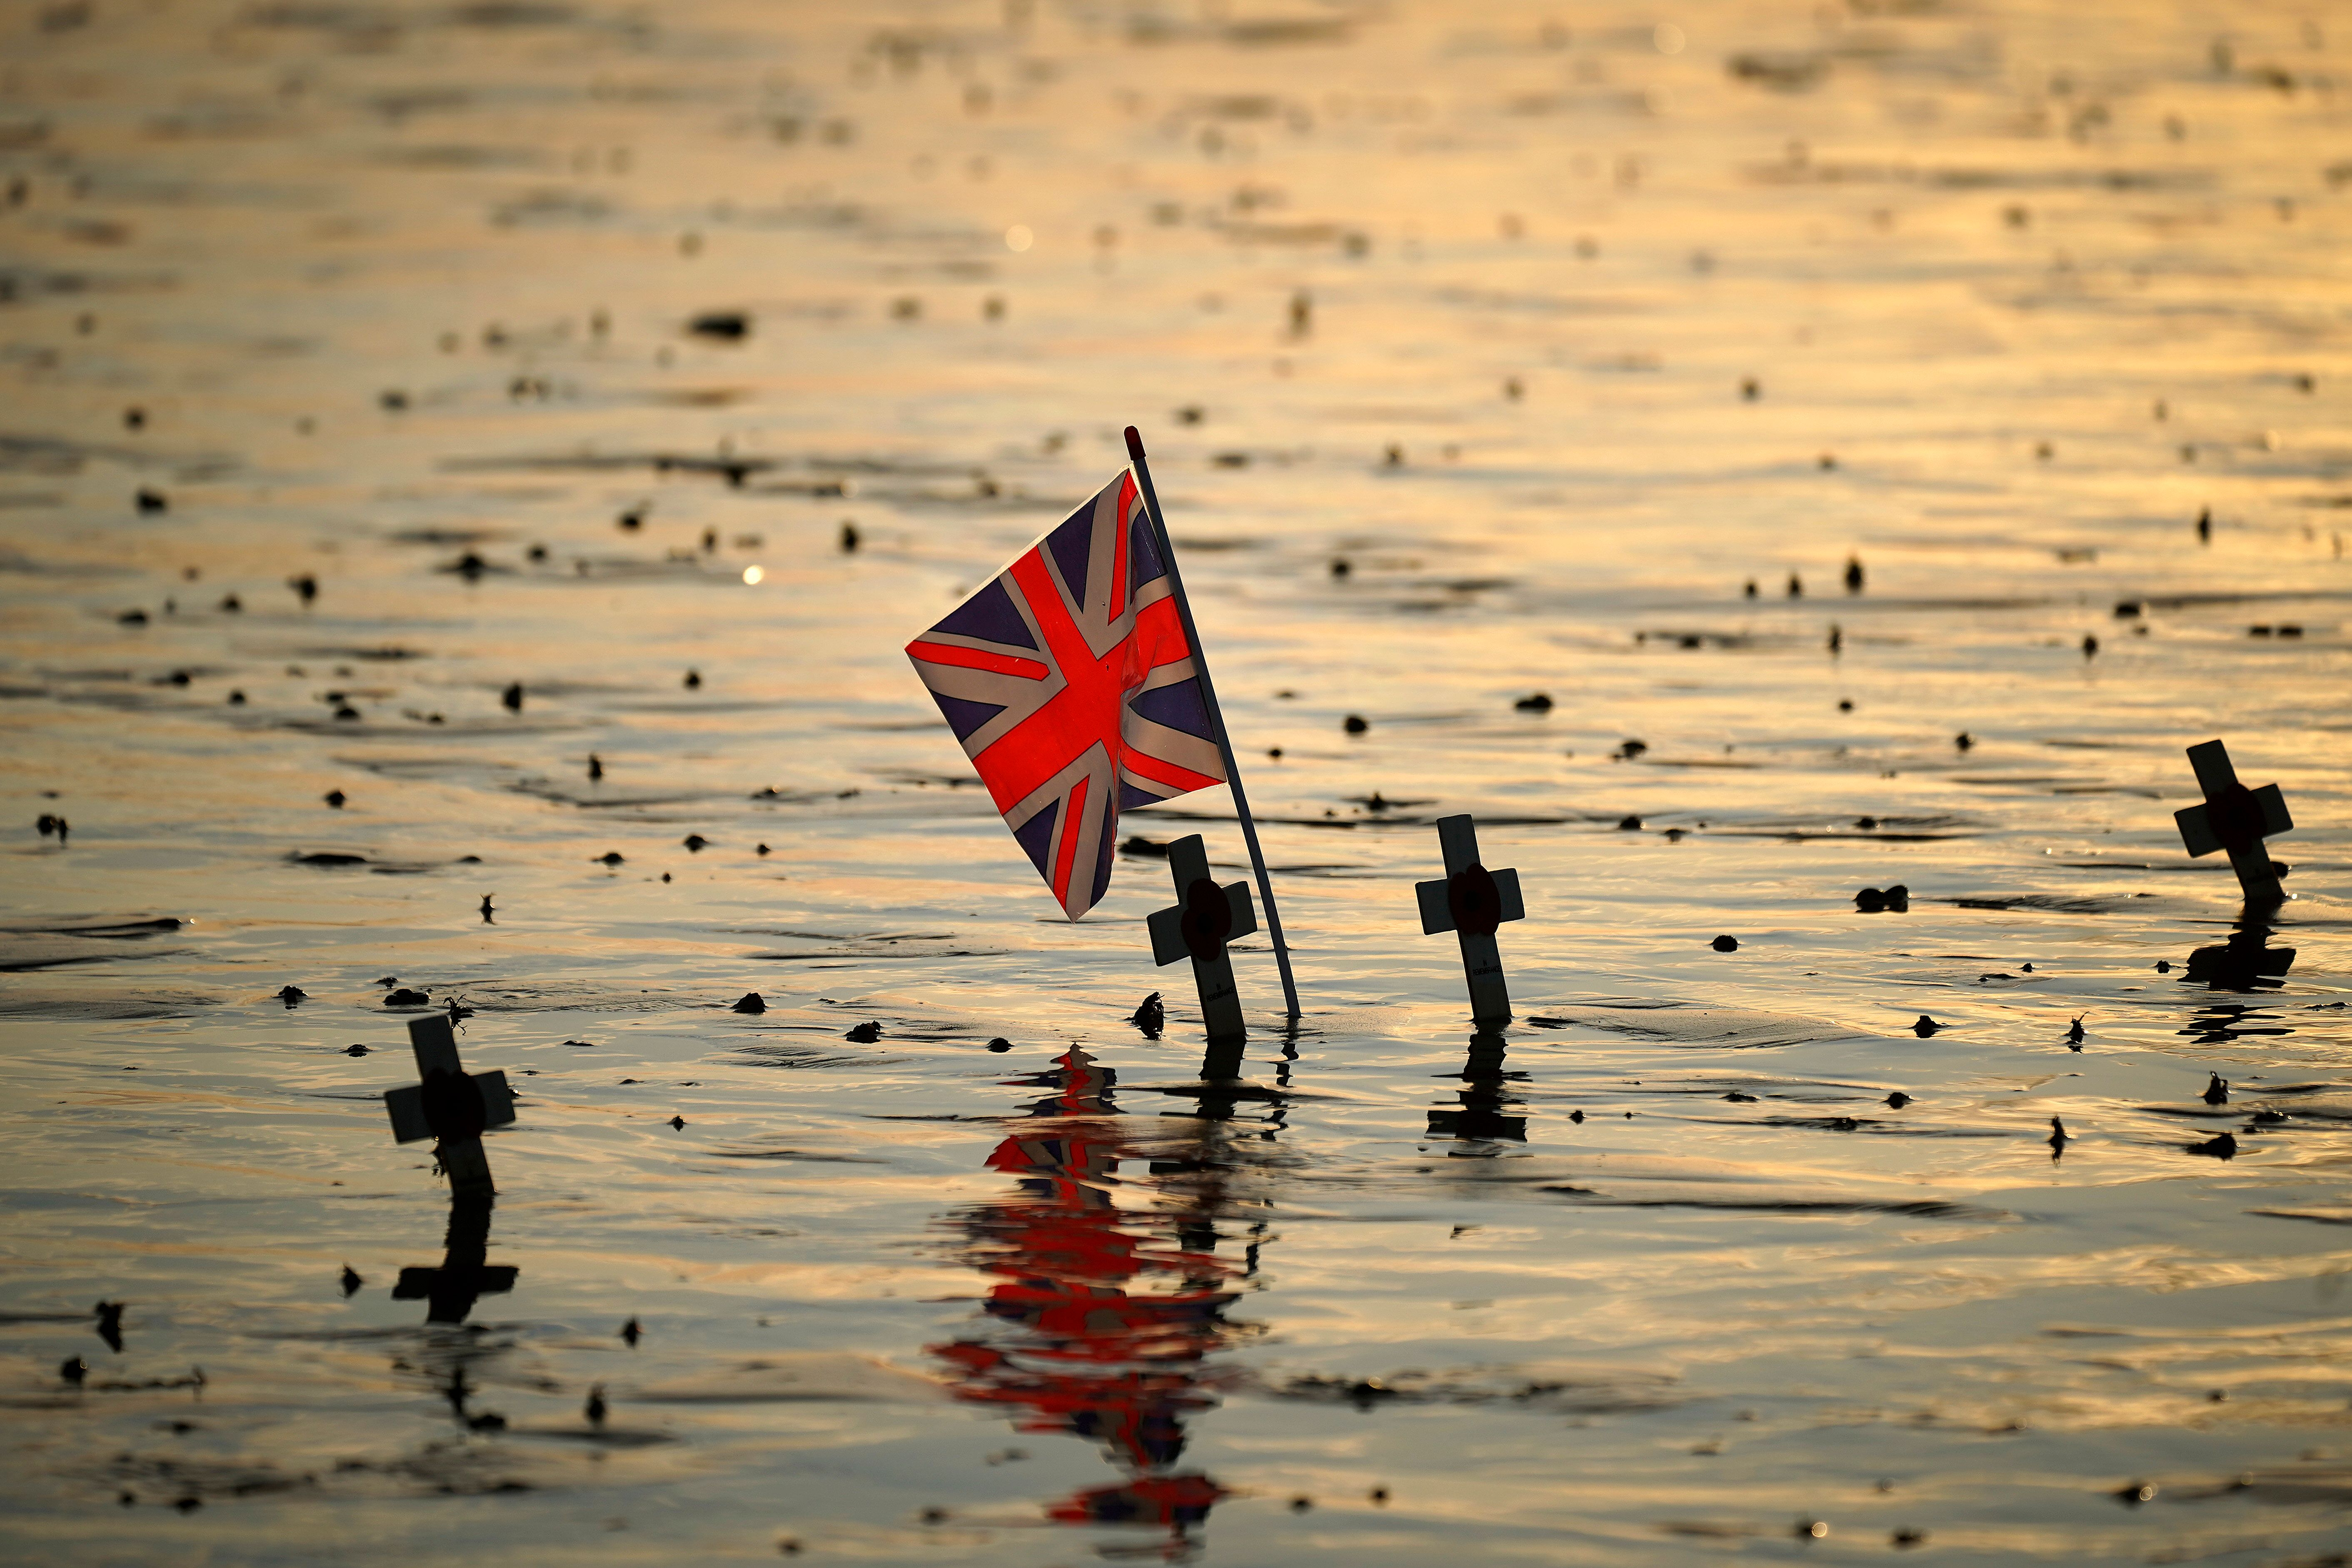 ARROMANCHES LES BAINS, FRANCE - JUNE 6: A Union Flag is planted alongside crosses on Gold Beach near the Mulberry harbour on the morning of the 75th anniversary of the D-Day landings on June 6, 2019 in Arromanches Les Bains, France. June 6th is the 75th anniversary of the D-Day landings which saw 156,000 troops from the allied countries including the United Kingdom and the United States join forces to launch an audacious attack on the beaches of Normandy, these assaults are credited with the eventual defeat of Nazi Germany. (Photo by Christopher Furlong/Getty Images)